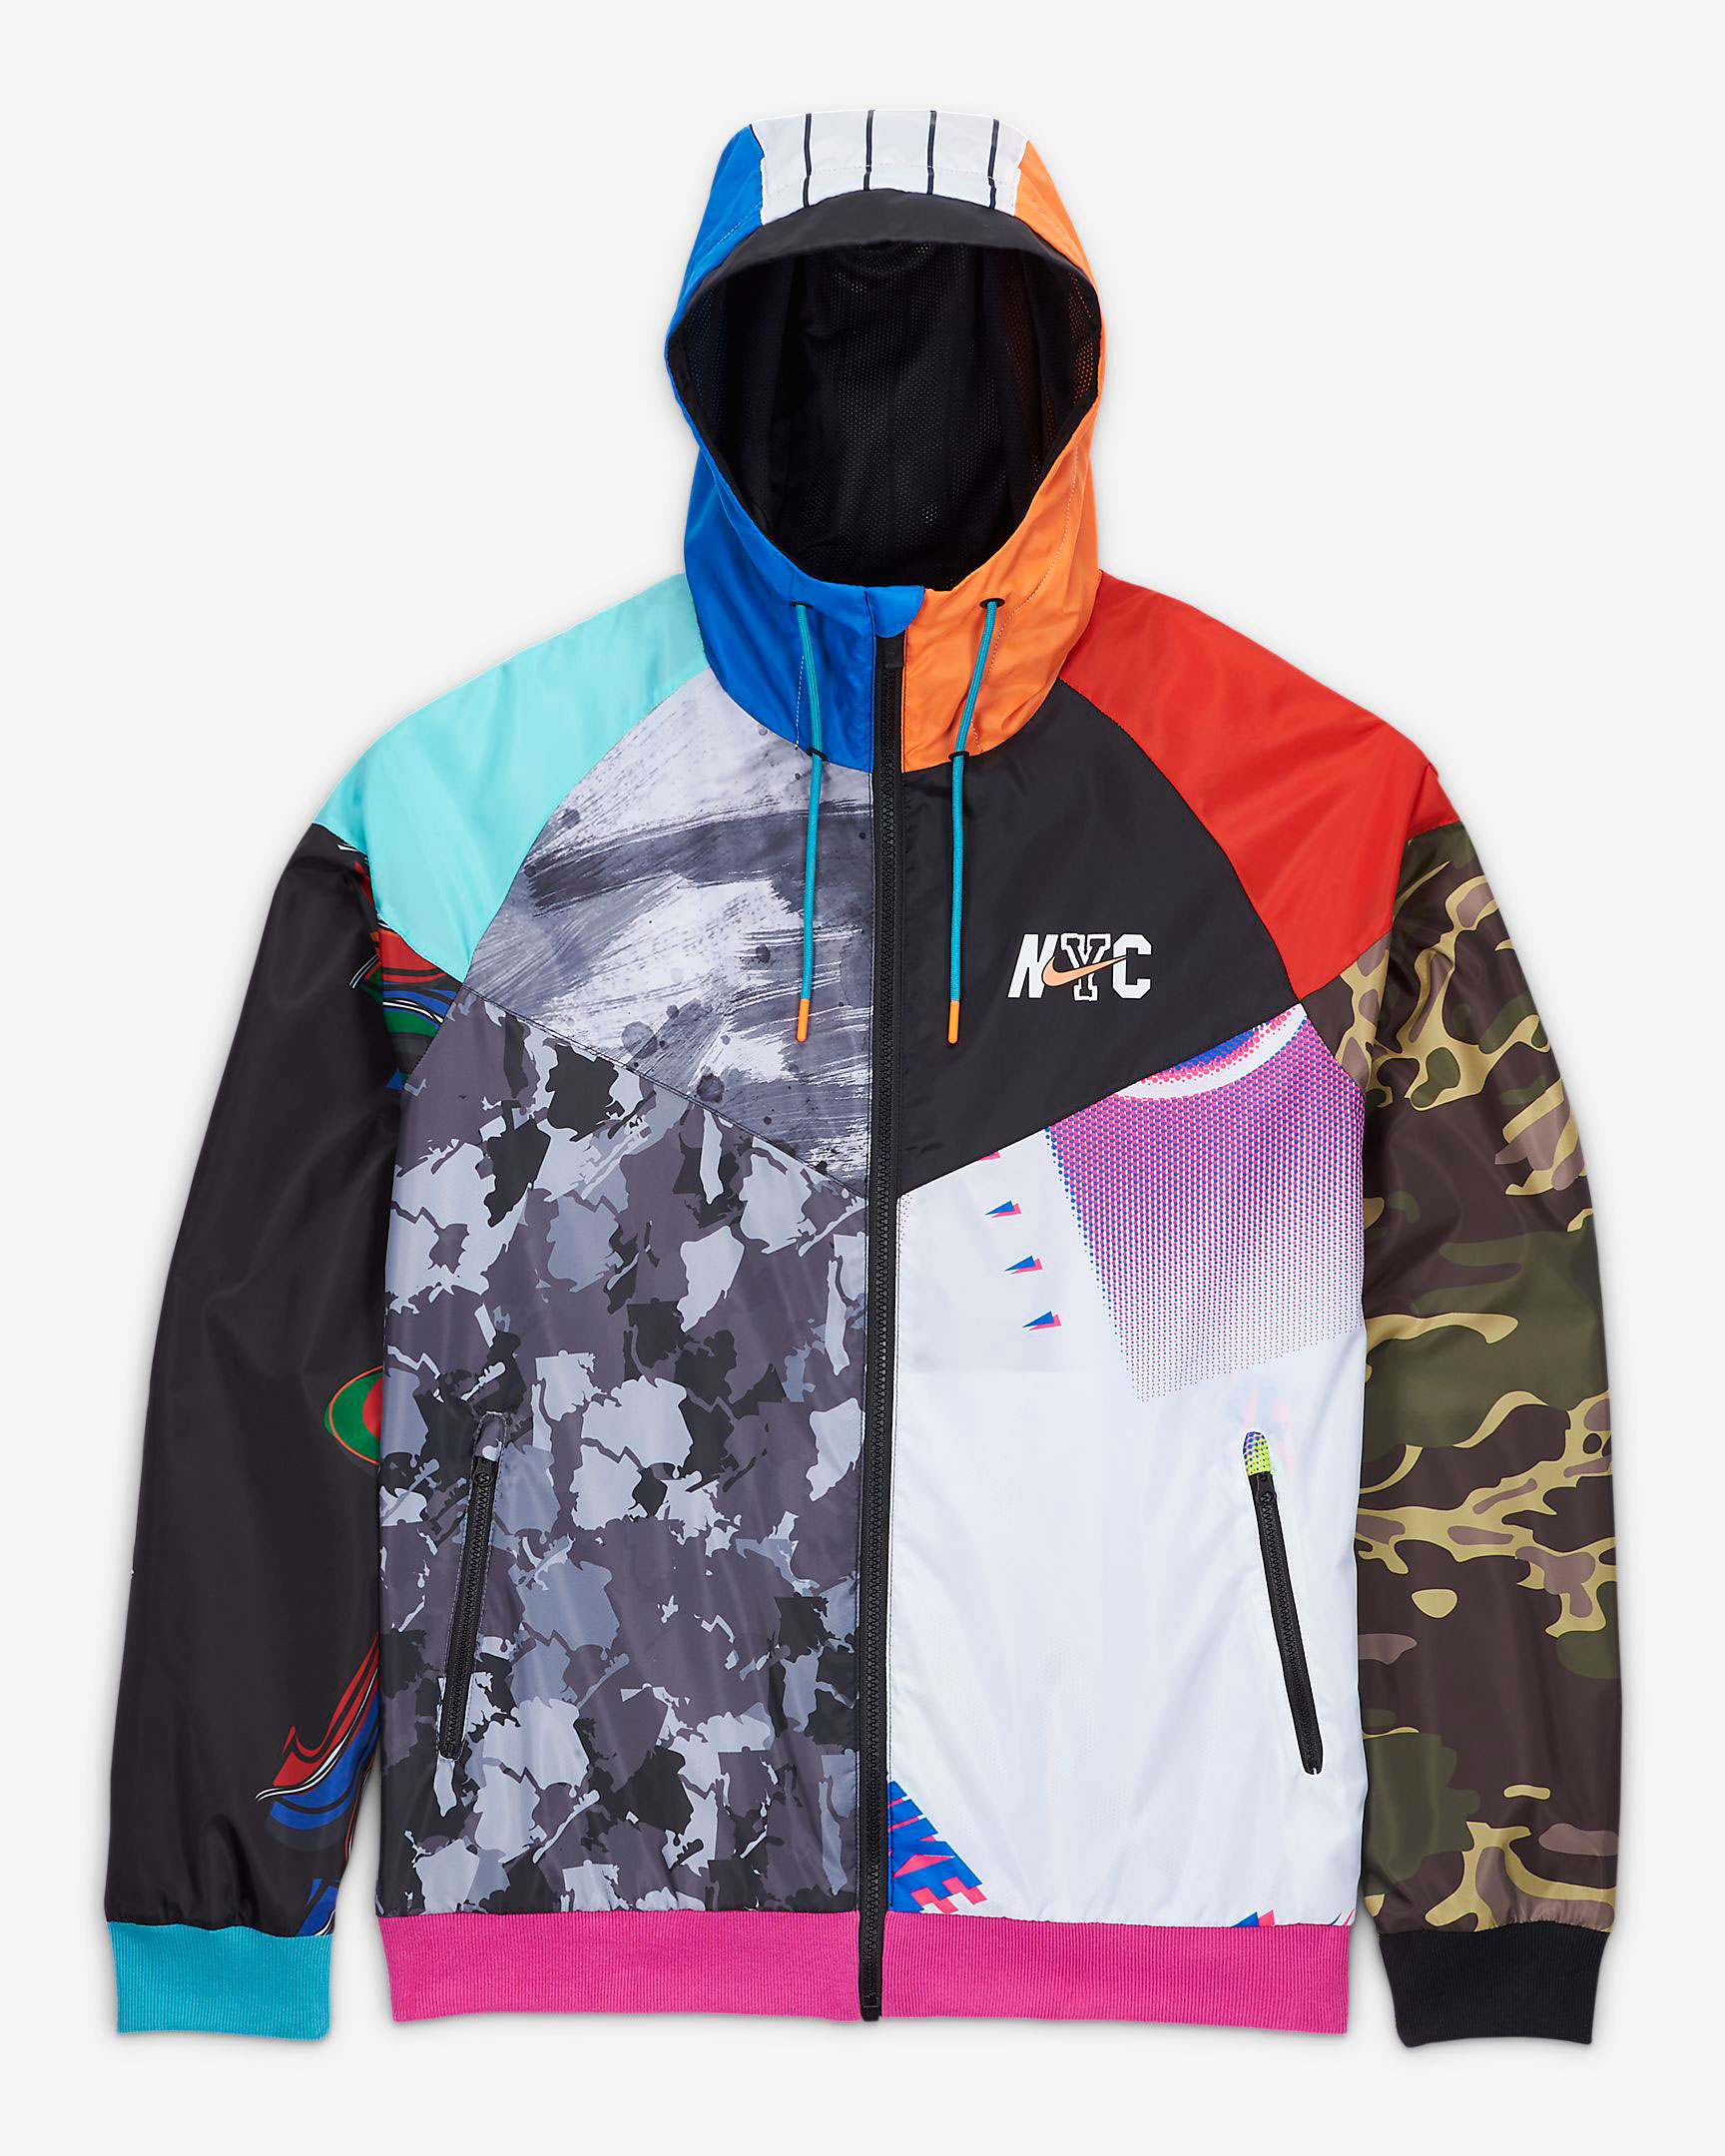 nike-air-force-1-ny-vs-ny-jacket-1